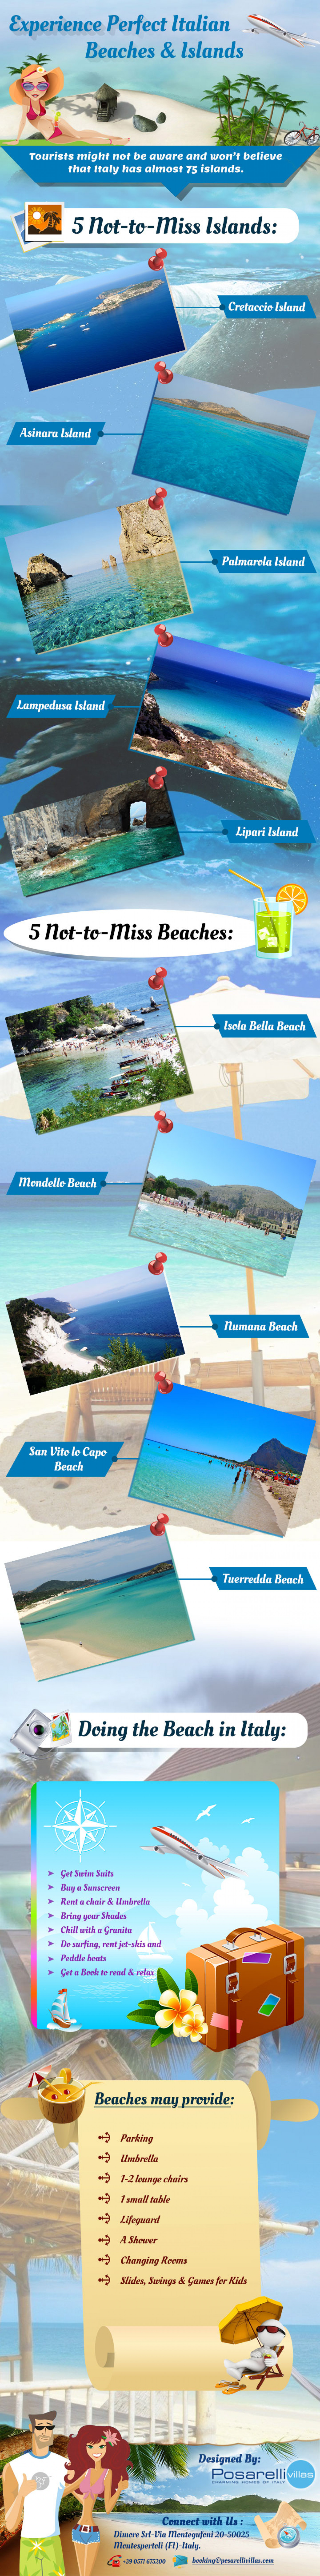 Experience Perfect Italian Beaches & Islands Infographic